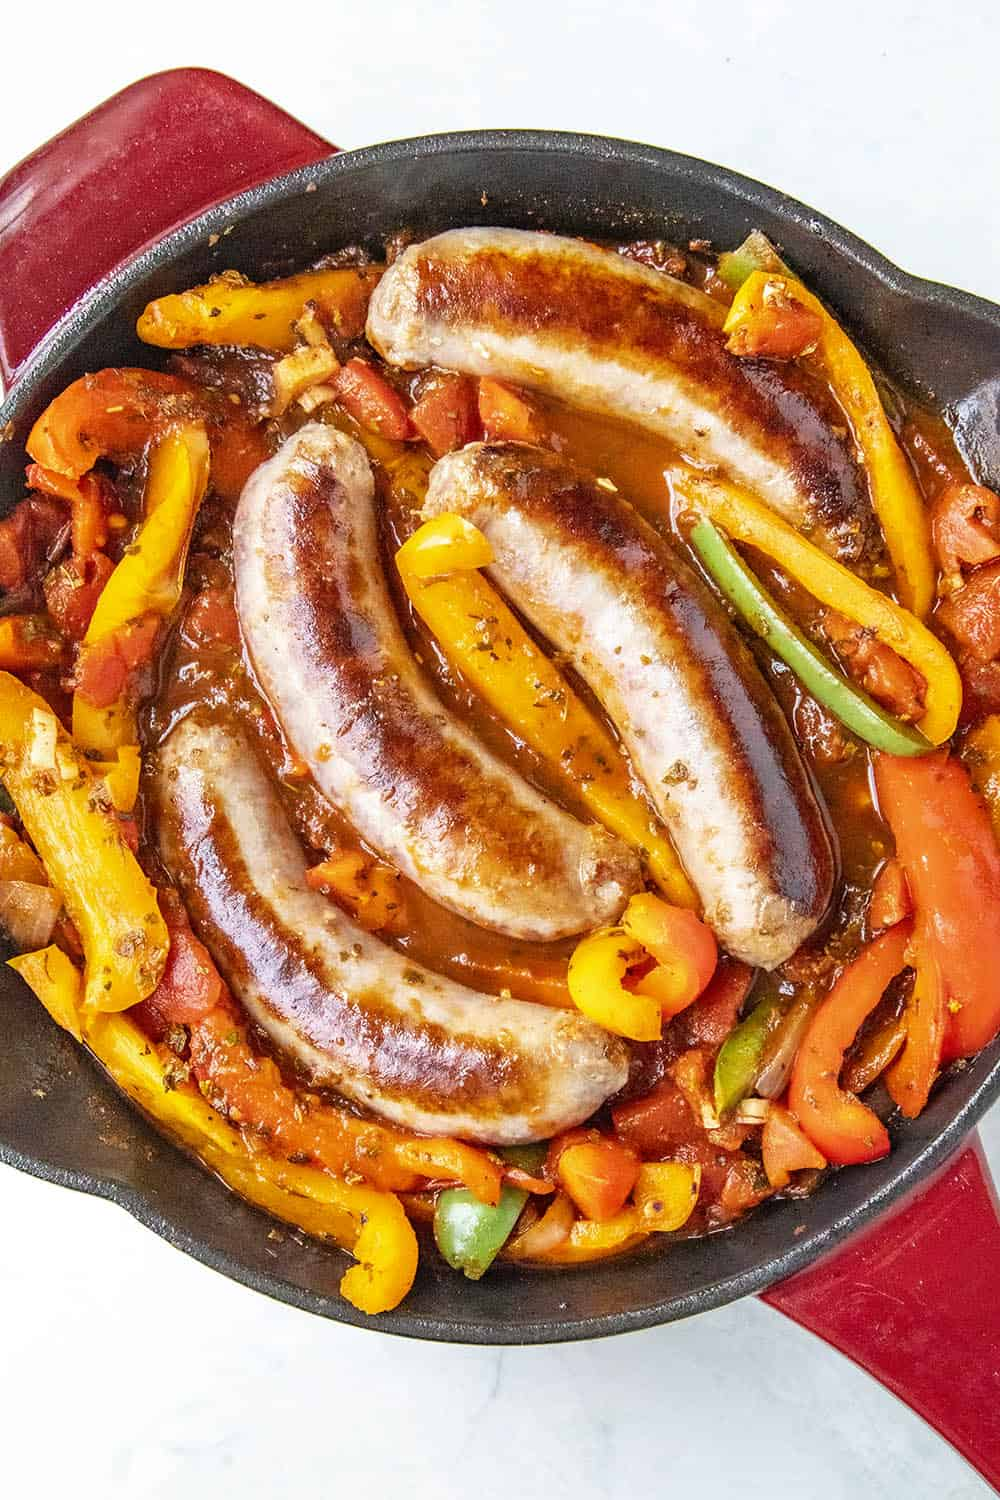 Simmering my Sausage and Peppers in a hot pan